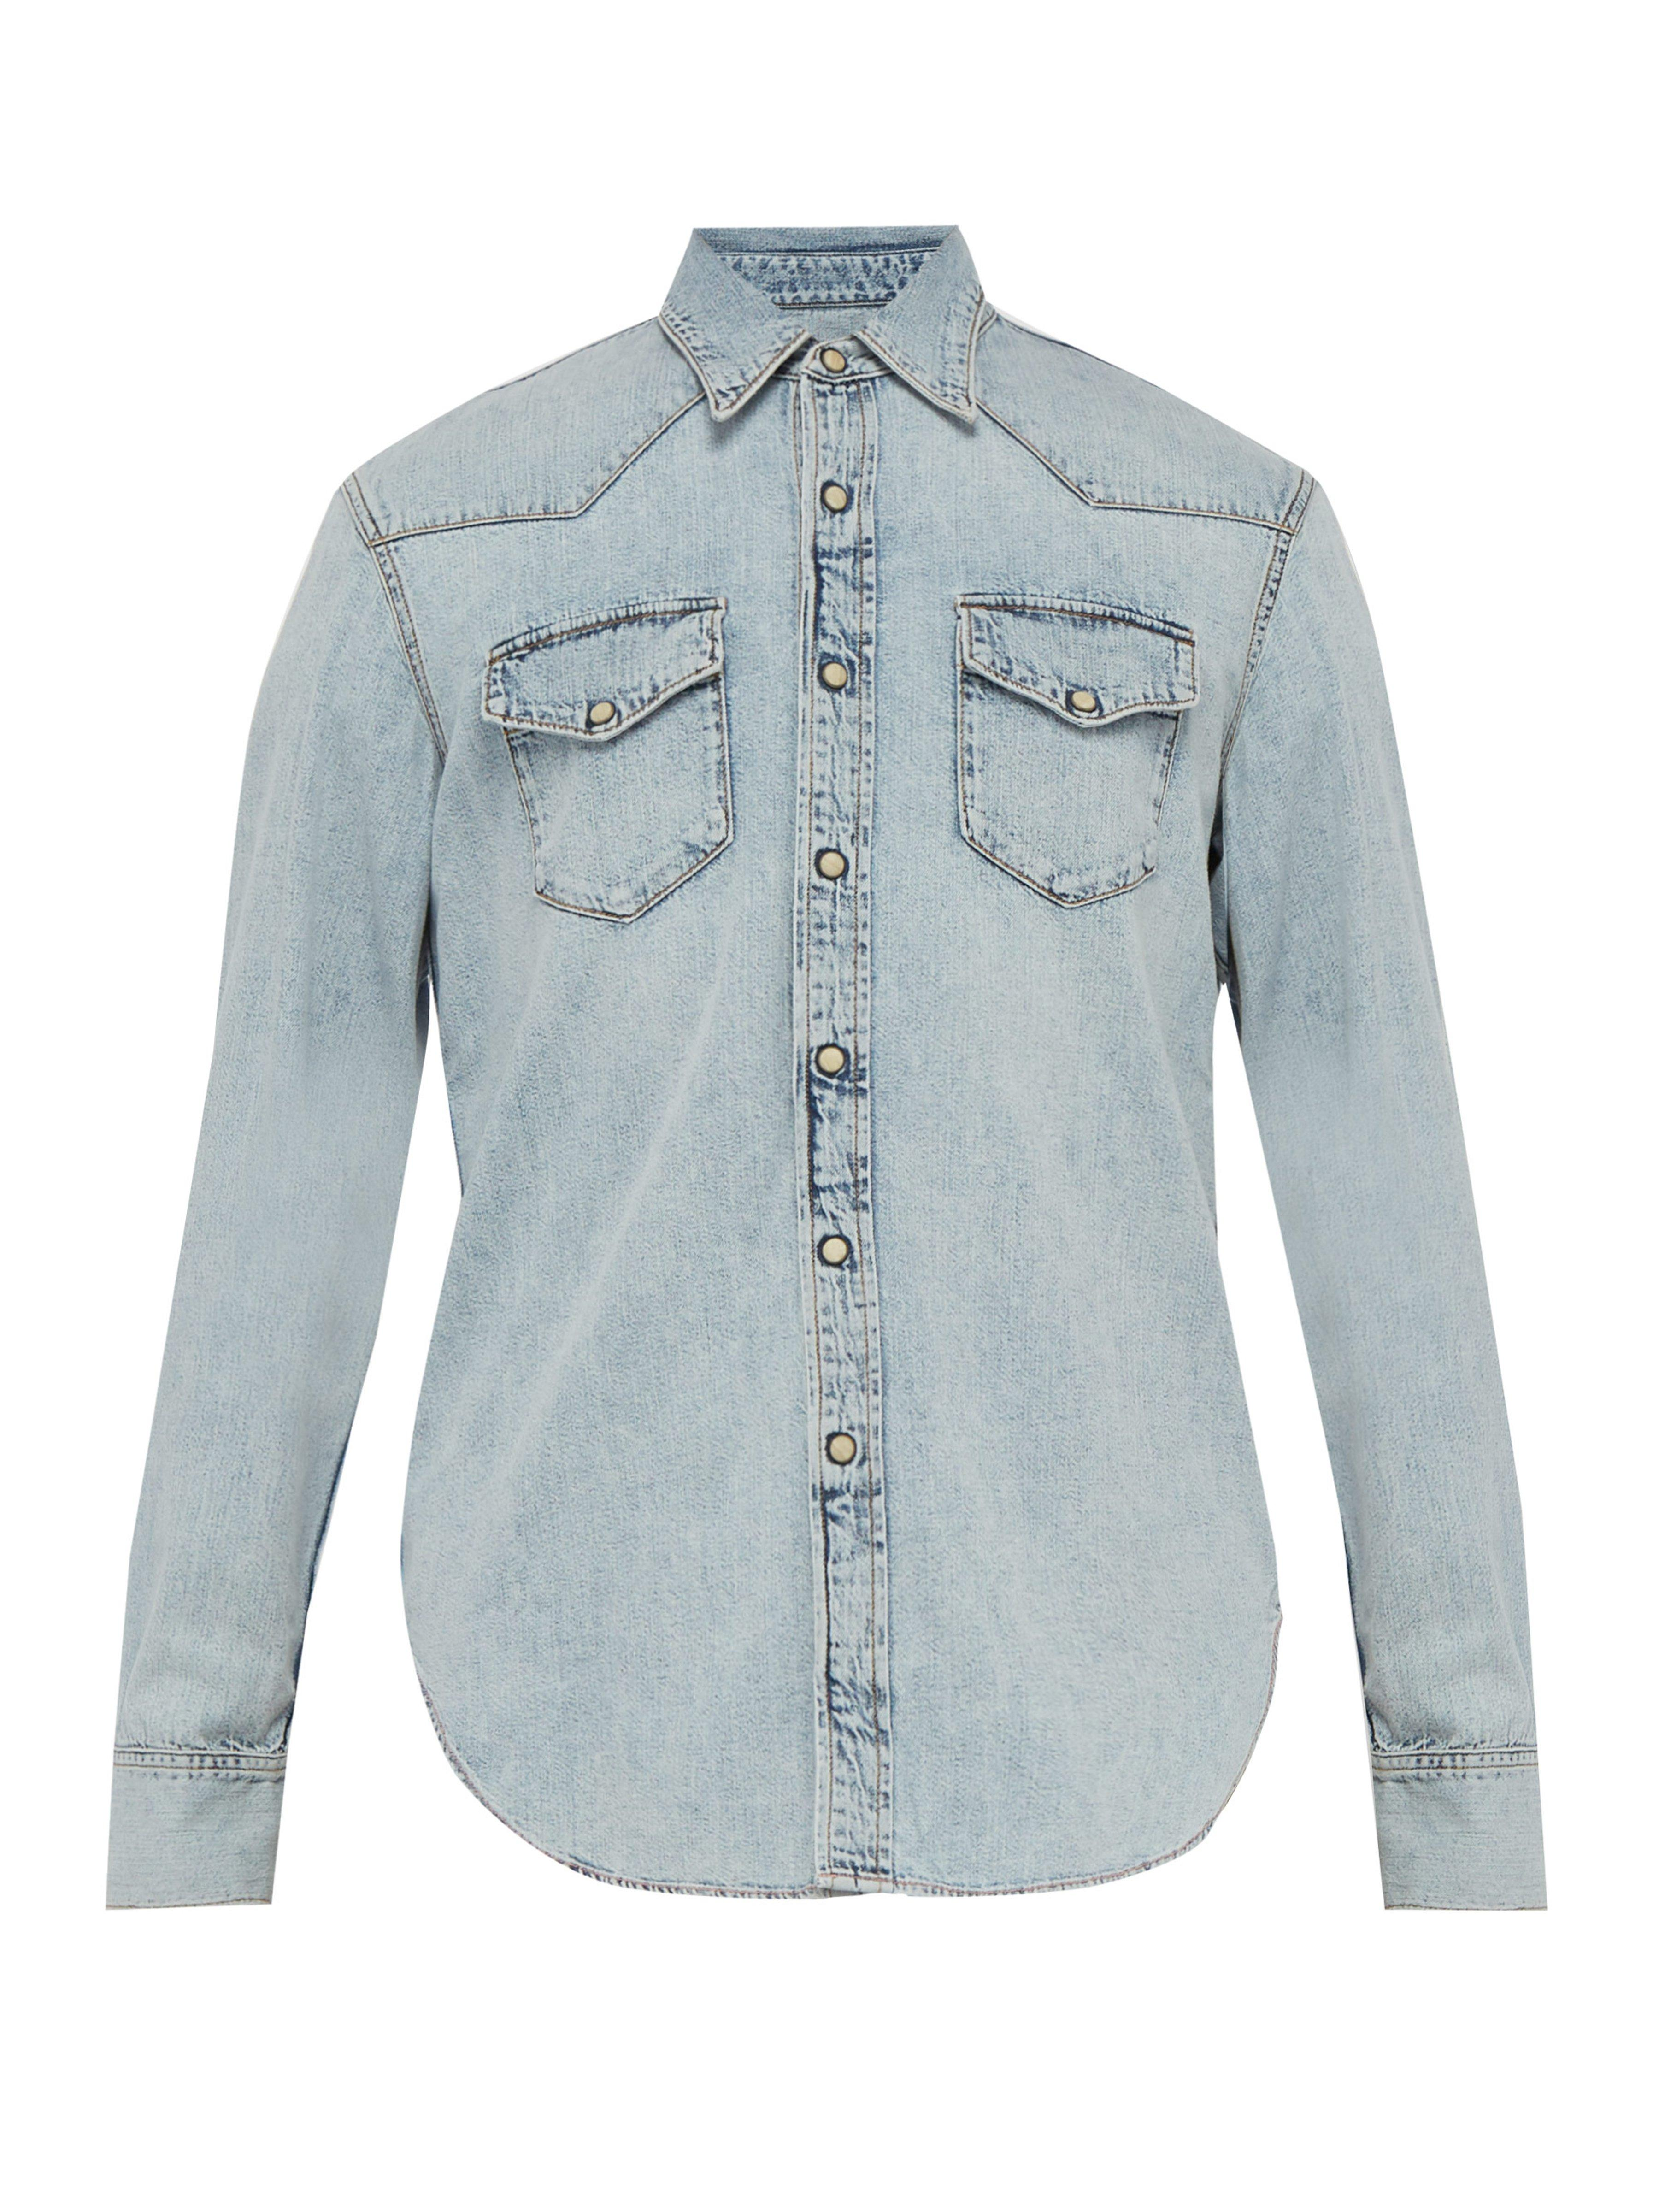 bd8497cde9 Acne Studios Marble Wash Denim Shirt in Blue for Men - Lyst